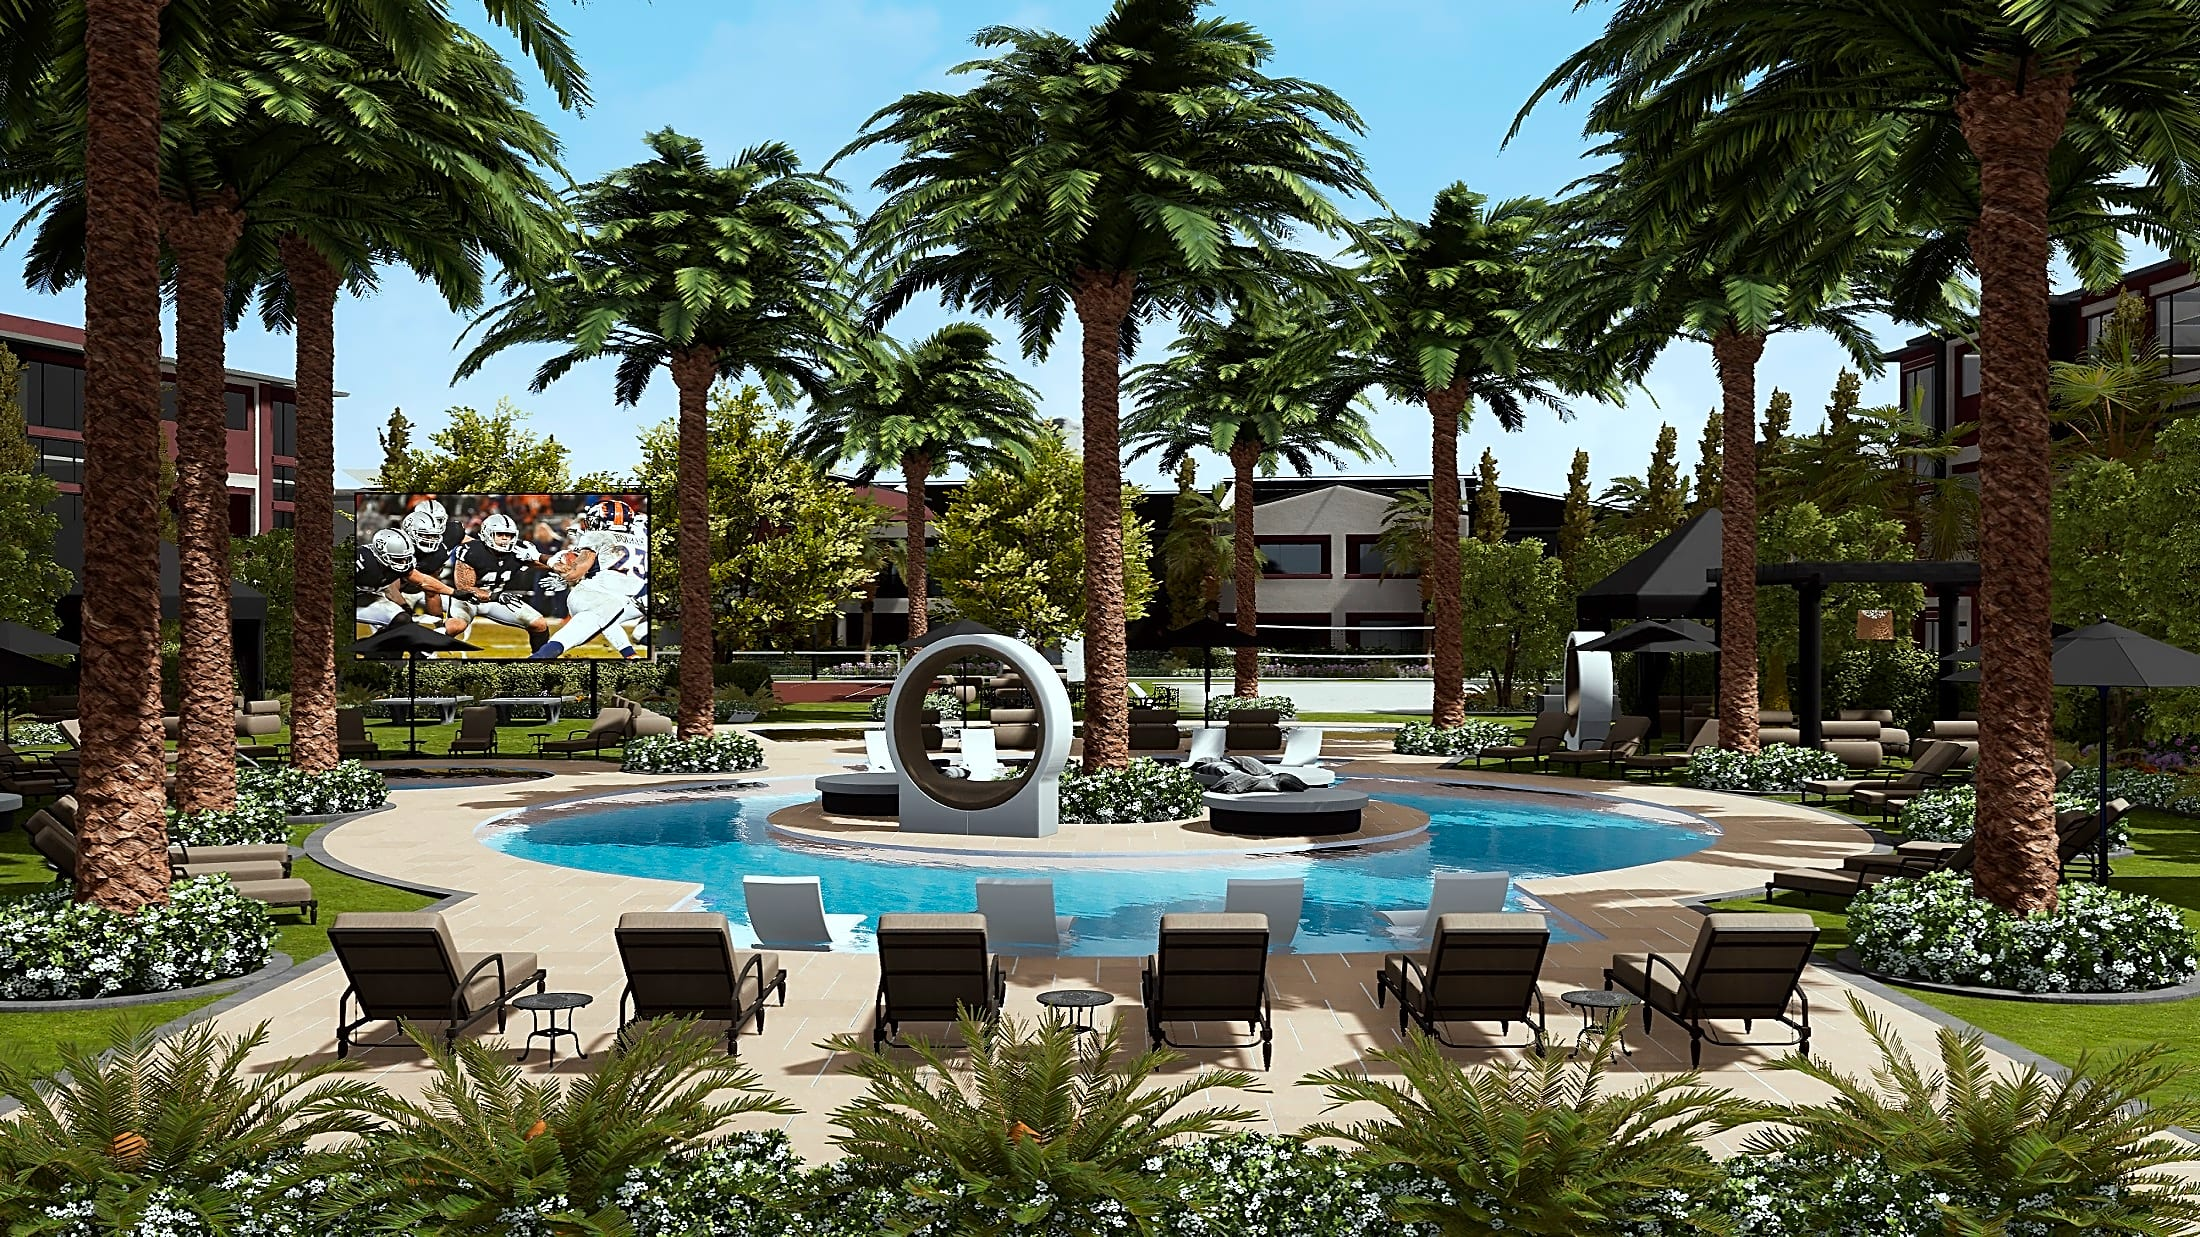 Apartments Near Las Vegas Tuscan Highlands for Las Vegas Students in Las Vegas, NV